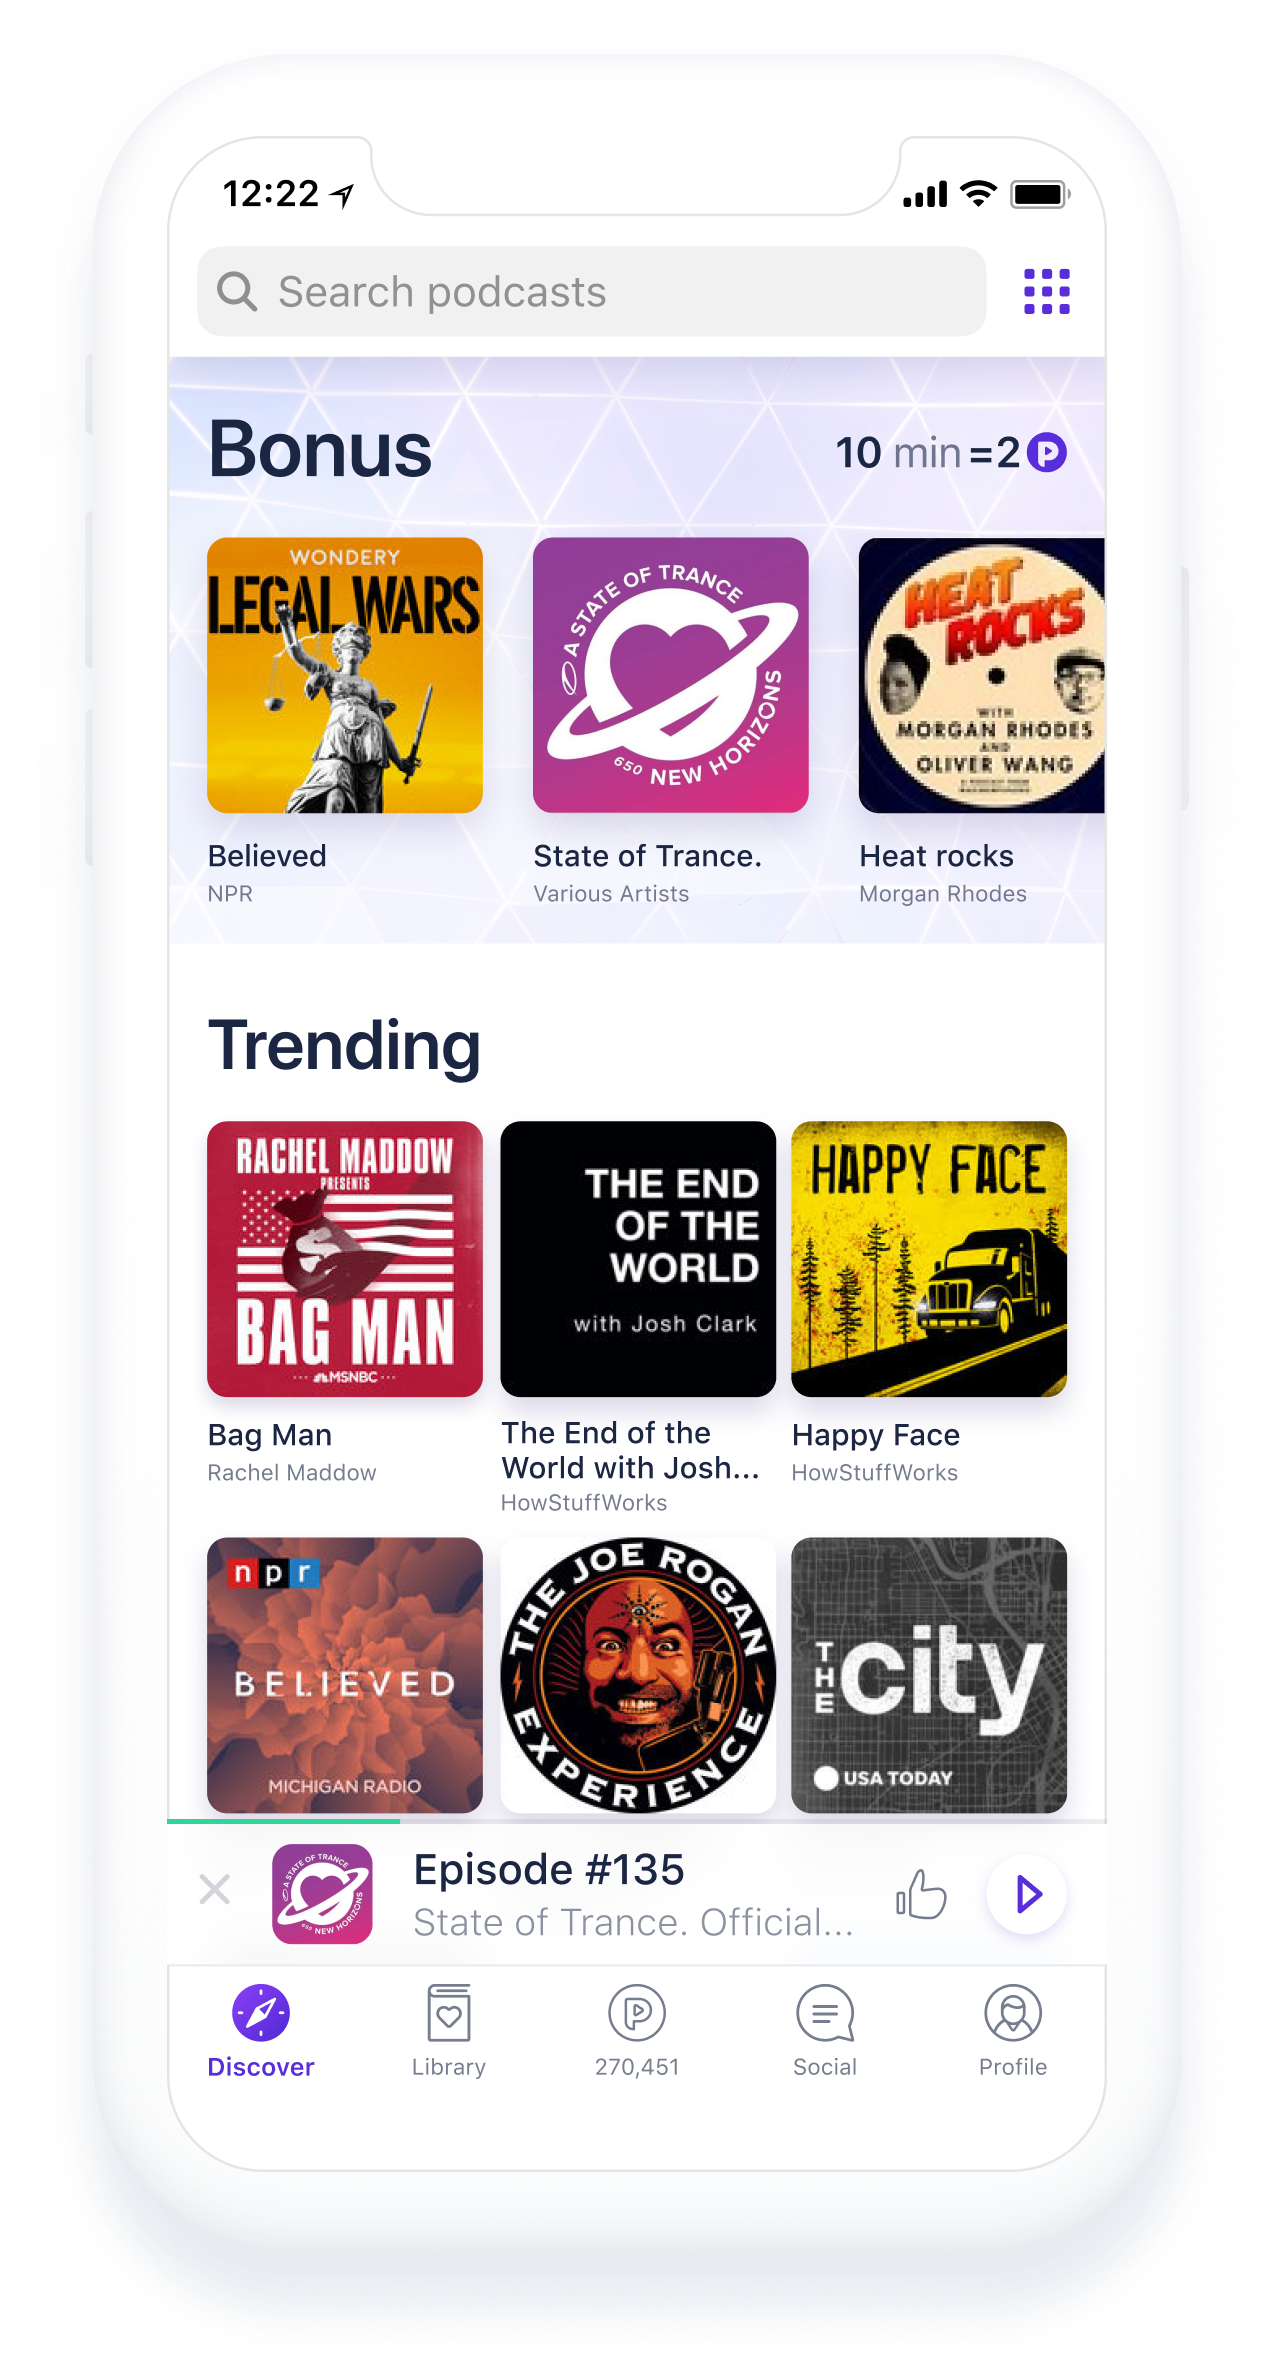 EVERY PODCAST AVAILABLE! - MORE then 583,764 PODCASTS and 37,302,762 EPISODES Available for YOU right NOW!